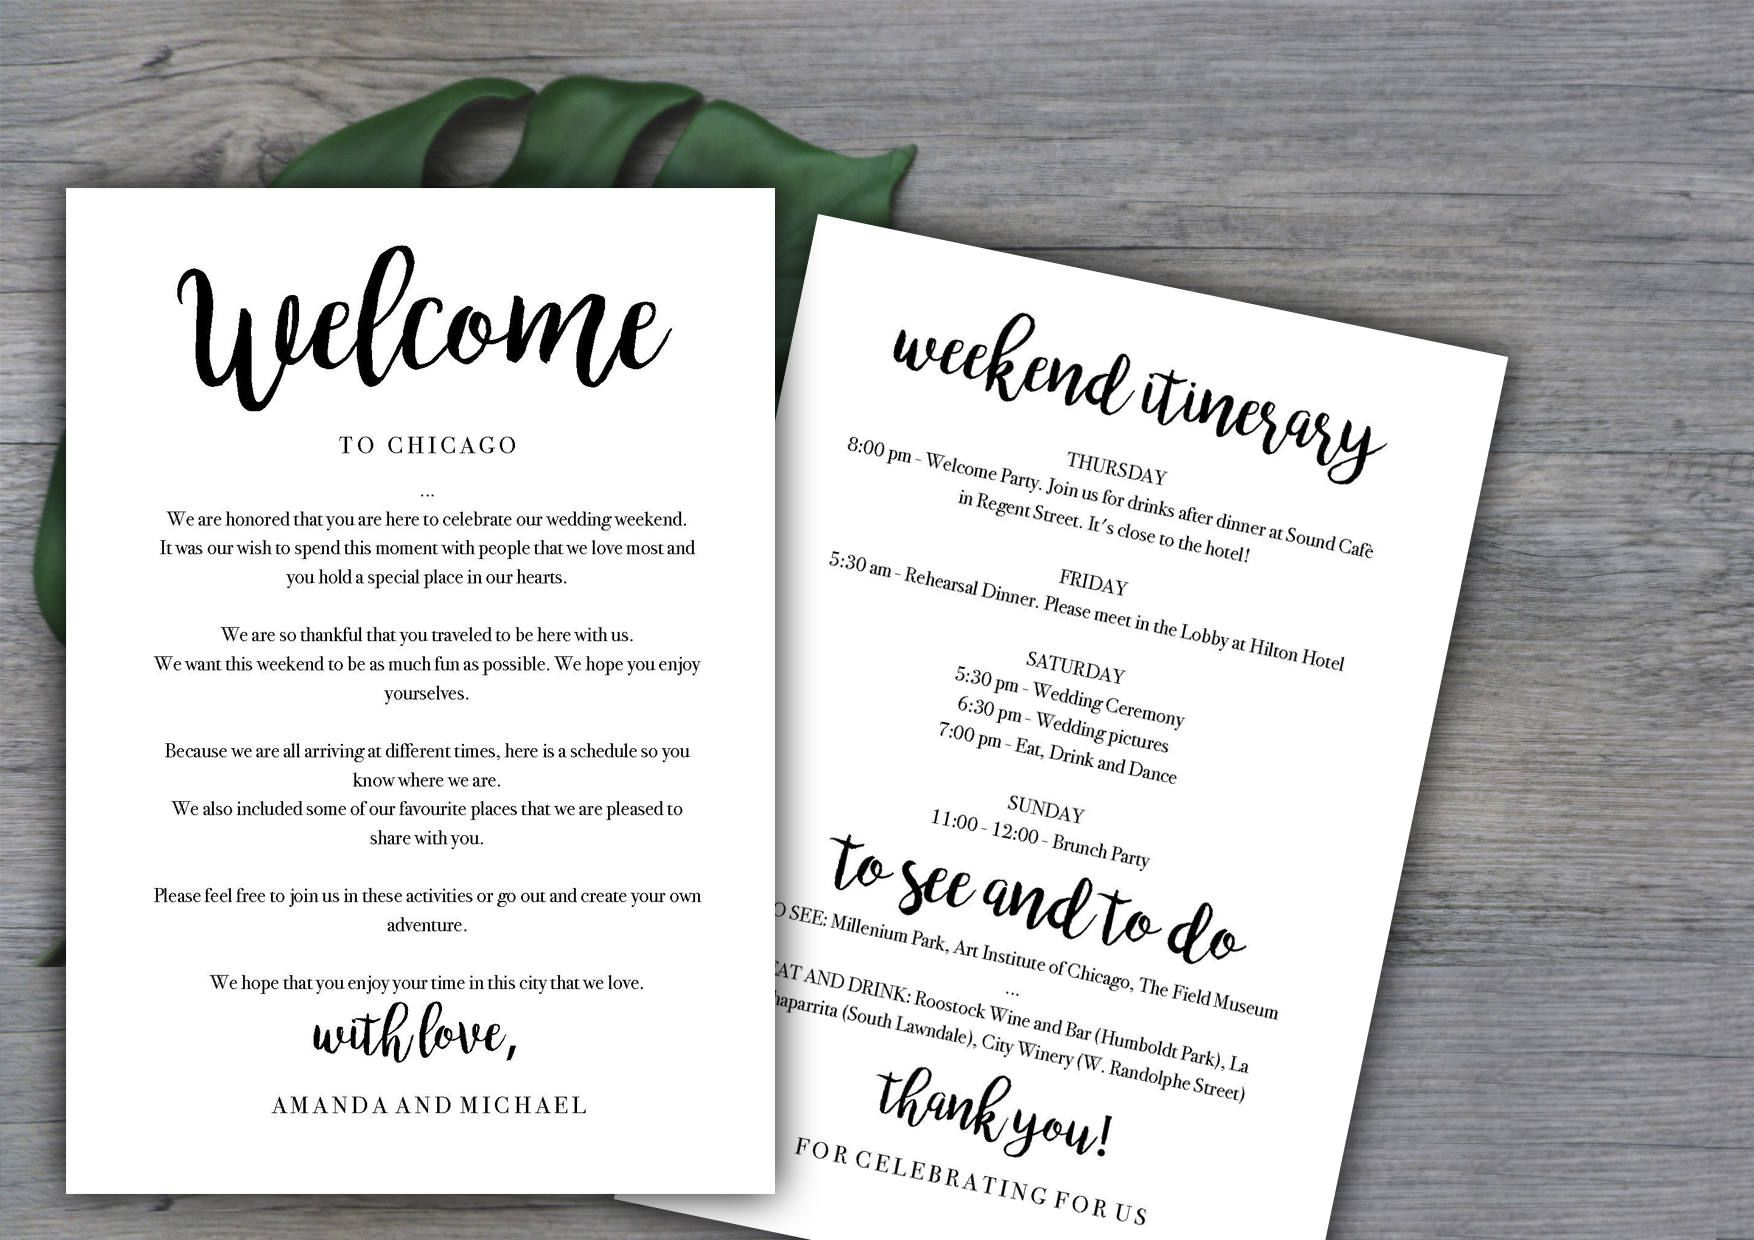 008 Formidable Destination Wedding Welcome Letter And Itinerary Template Highest Clarity Full